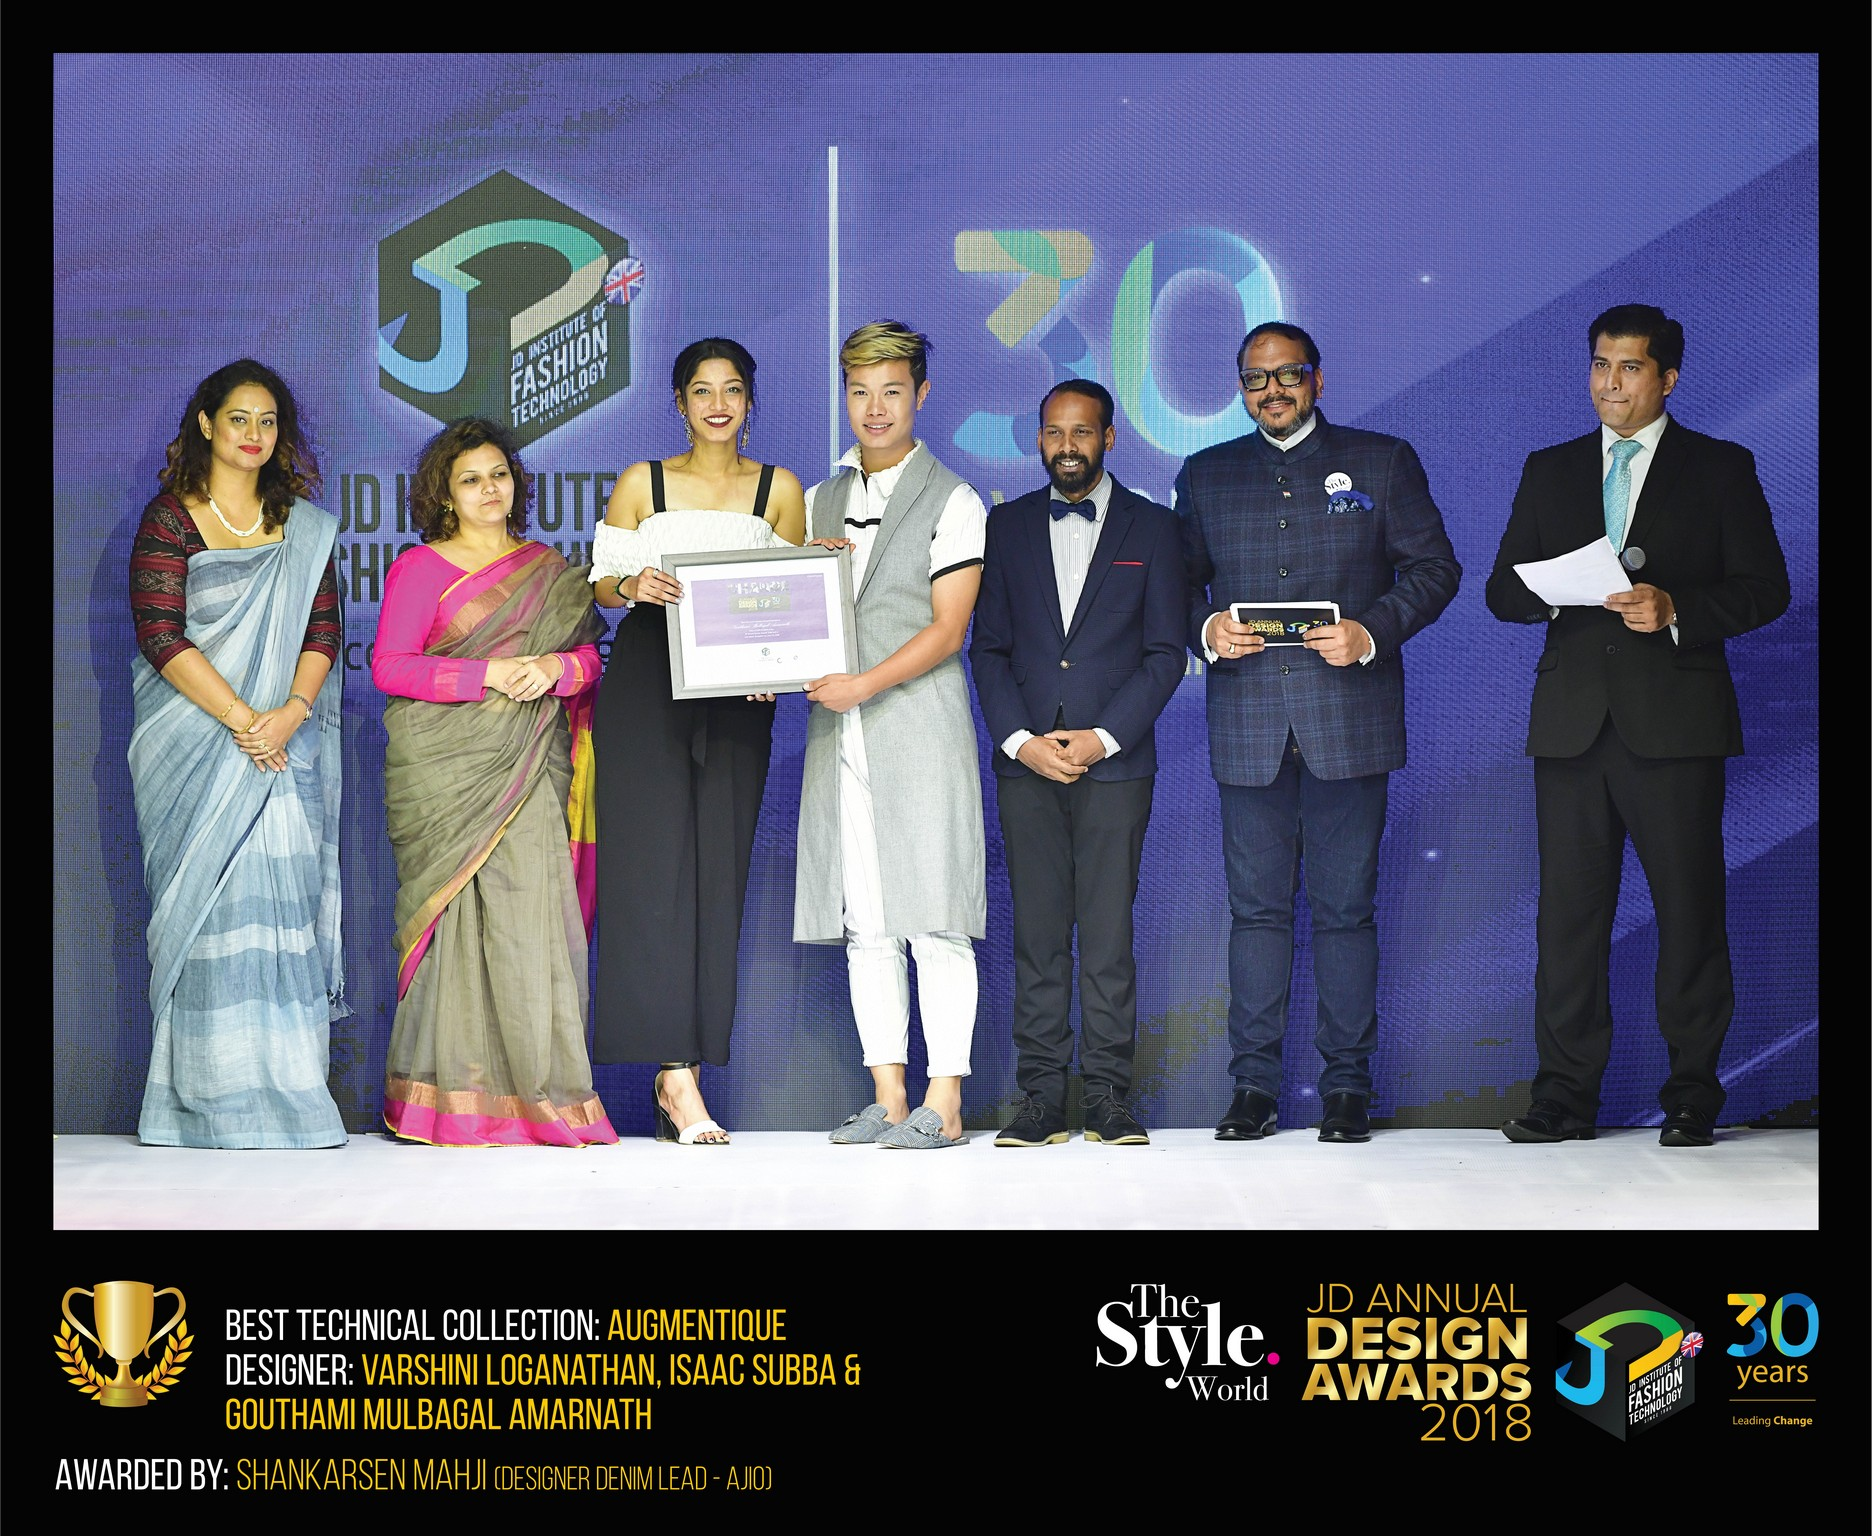 Augmentique – CHANGE – JD ANNUAL DESIGN AWARDS 2018   Designer: Varshini, Issac and Gouthami   Photography : Jerin Nath (@jerin_nath) augmentique - AUGMENTIQUE - Augmentique – Change – JD Annual Design Awards 2018